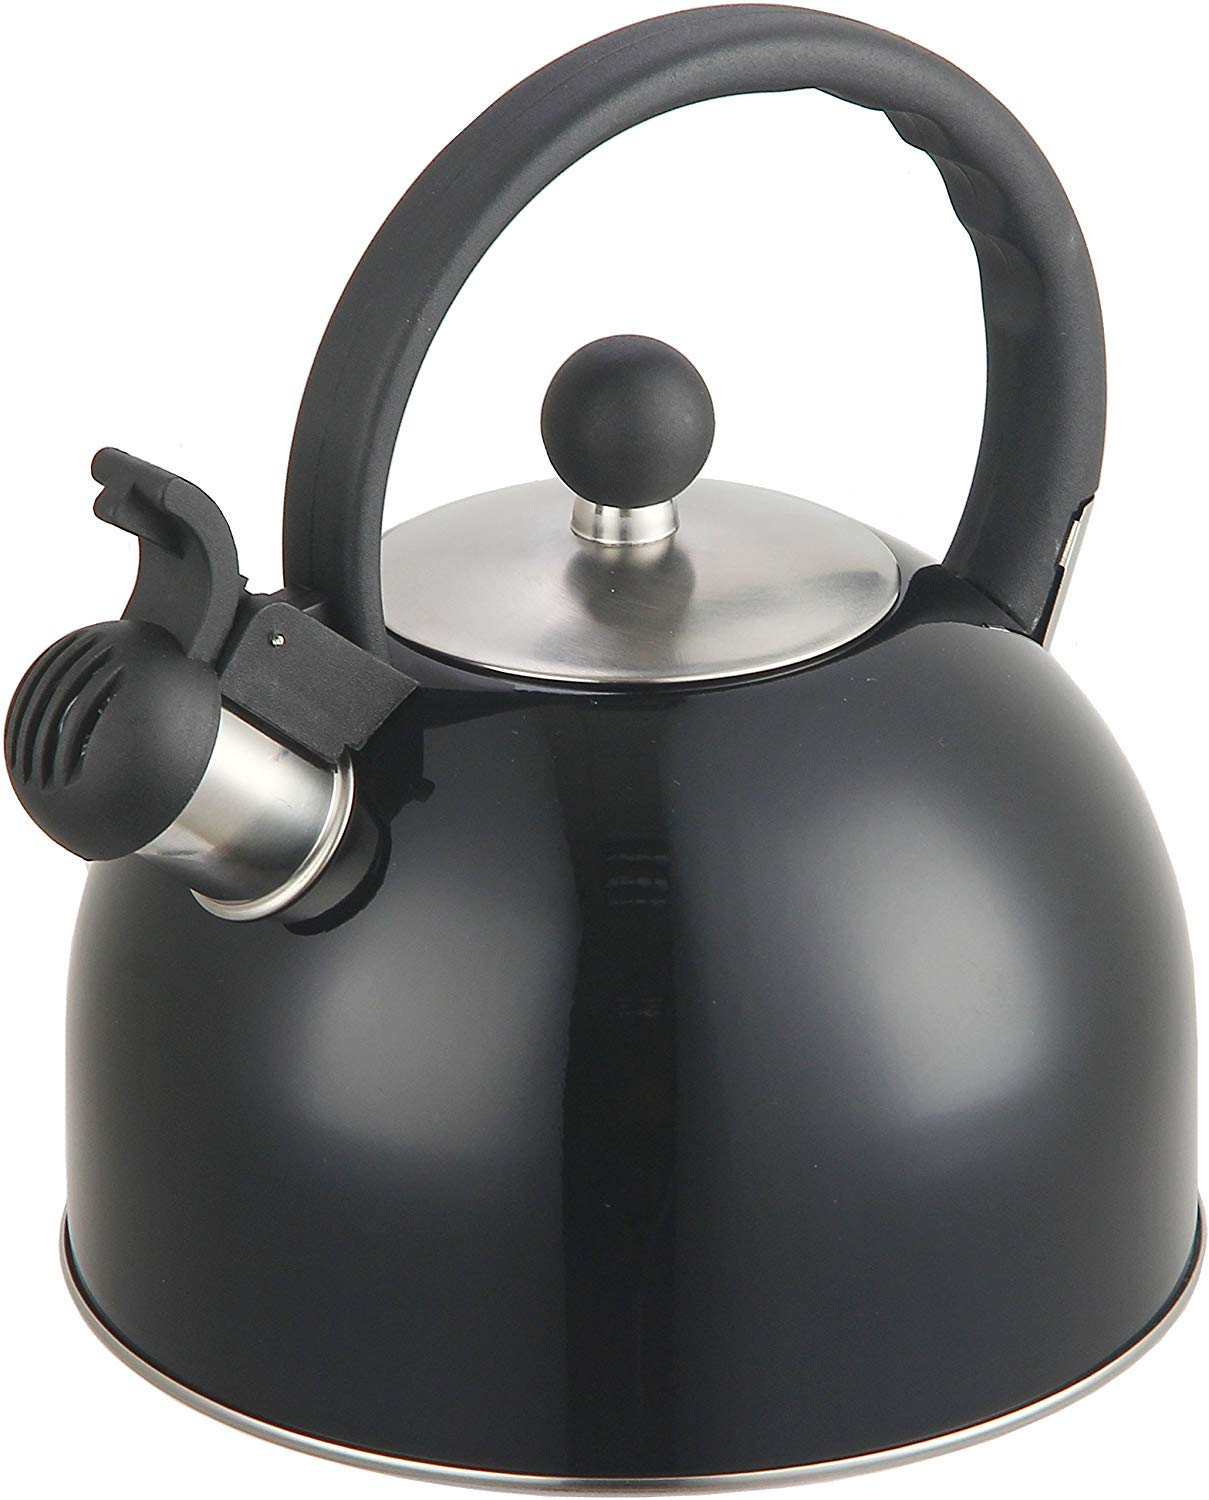 2 Liter Stainless Steel Whistling Tea Kettle - Modern Stainless Steel Whistling Tea Pot for Stovetop with Cool Grip Ergonomic Handle (Black) by DFL INC.